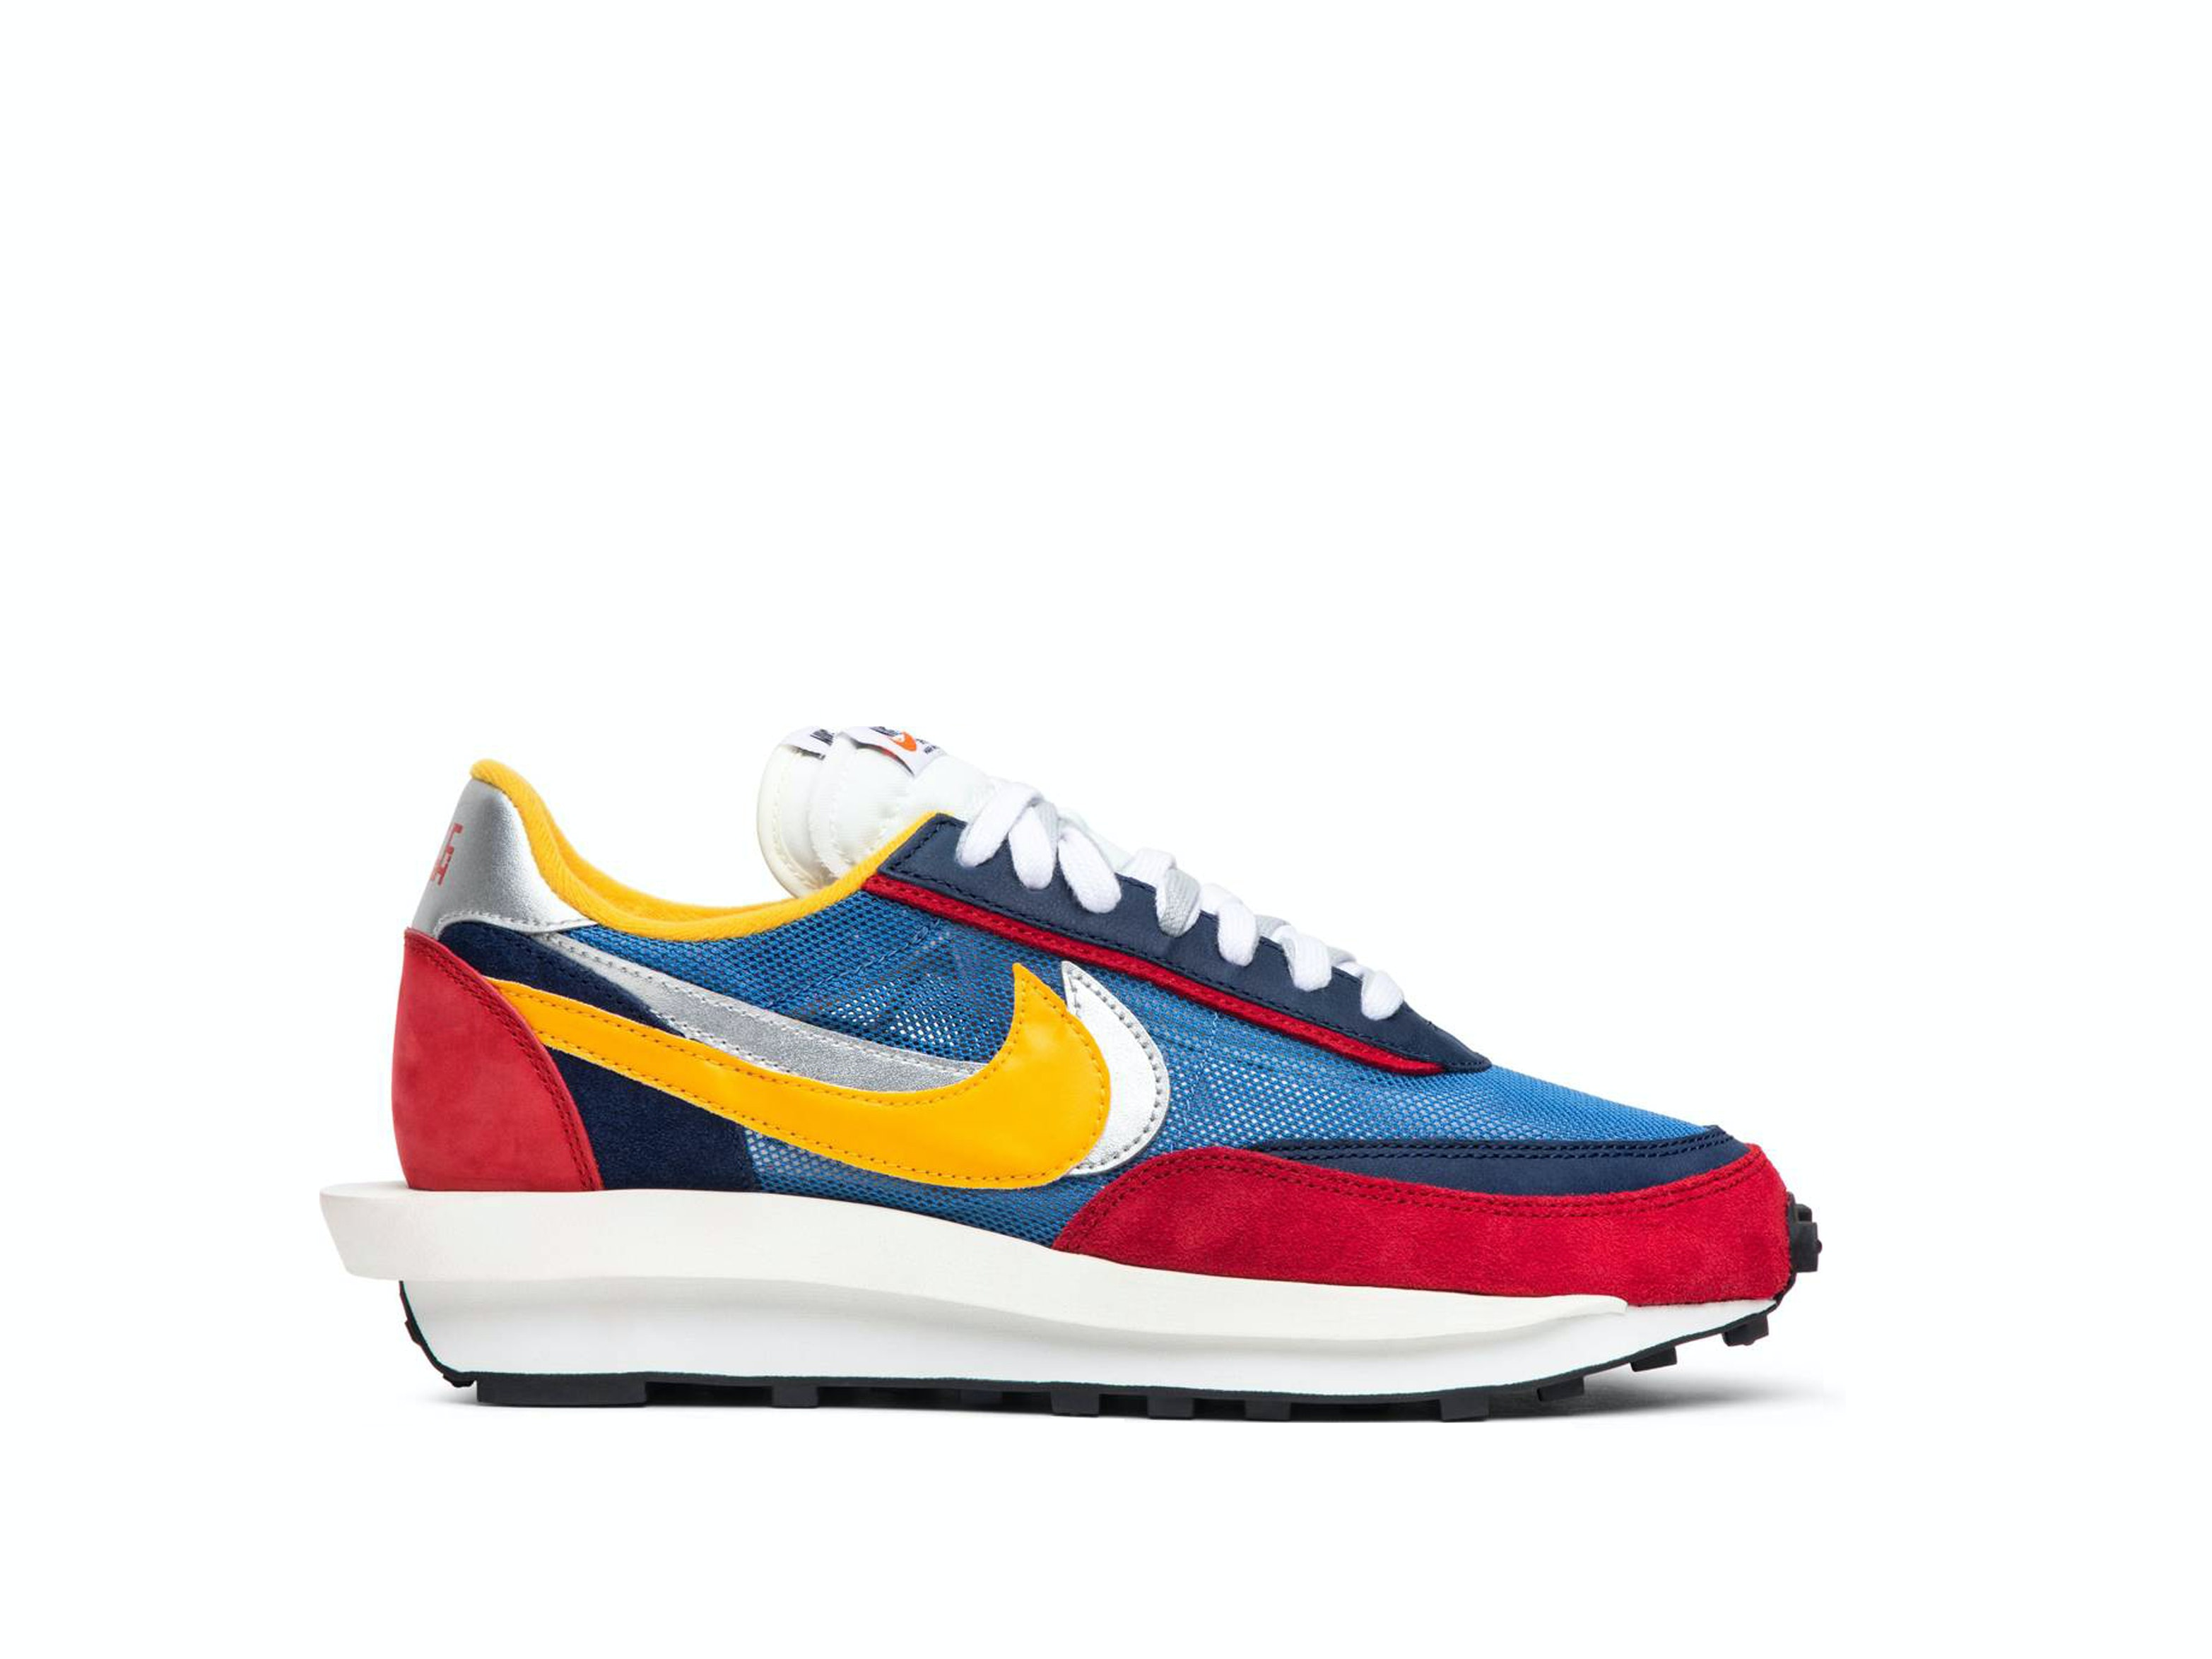 separation shoes 6ce63 93dfe Nike LDV Waffle x Sacai Daybreak Blue